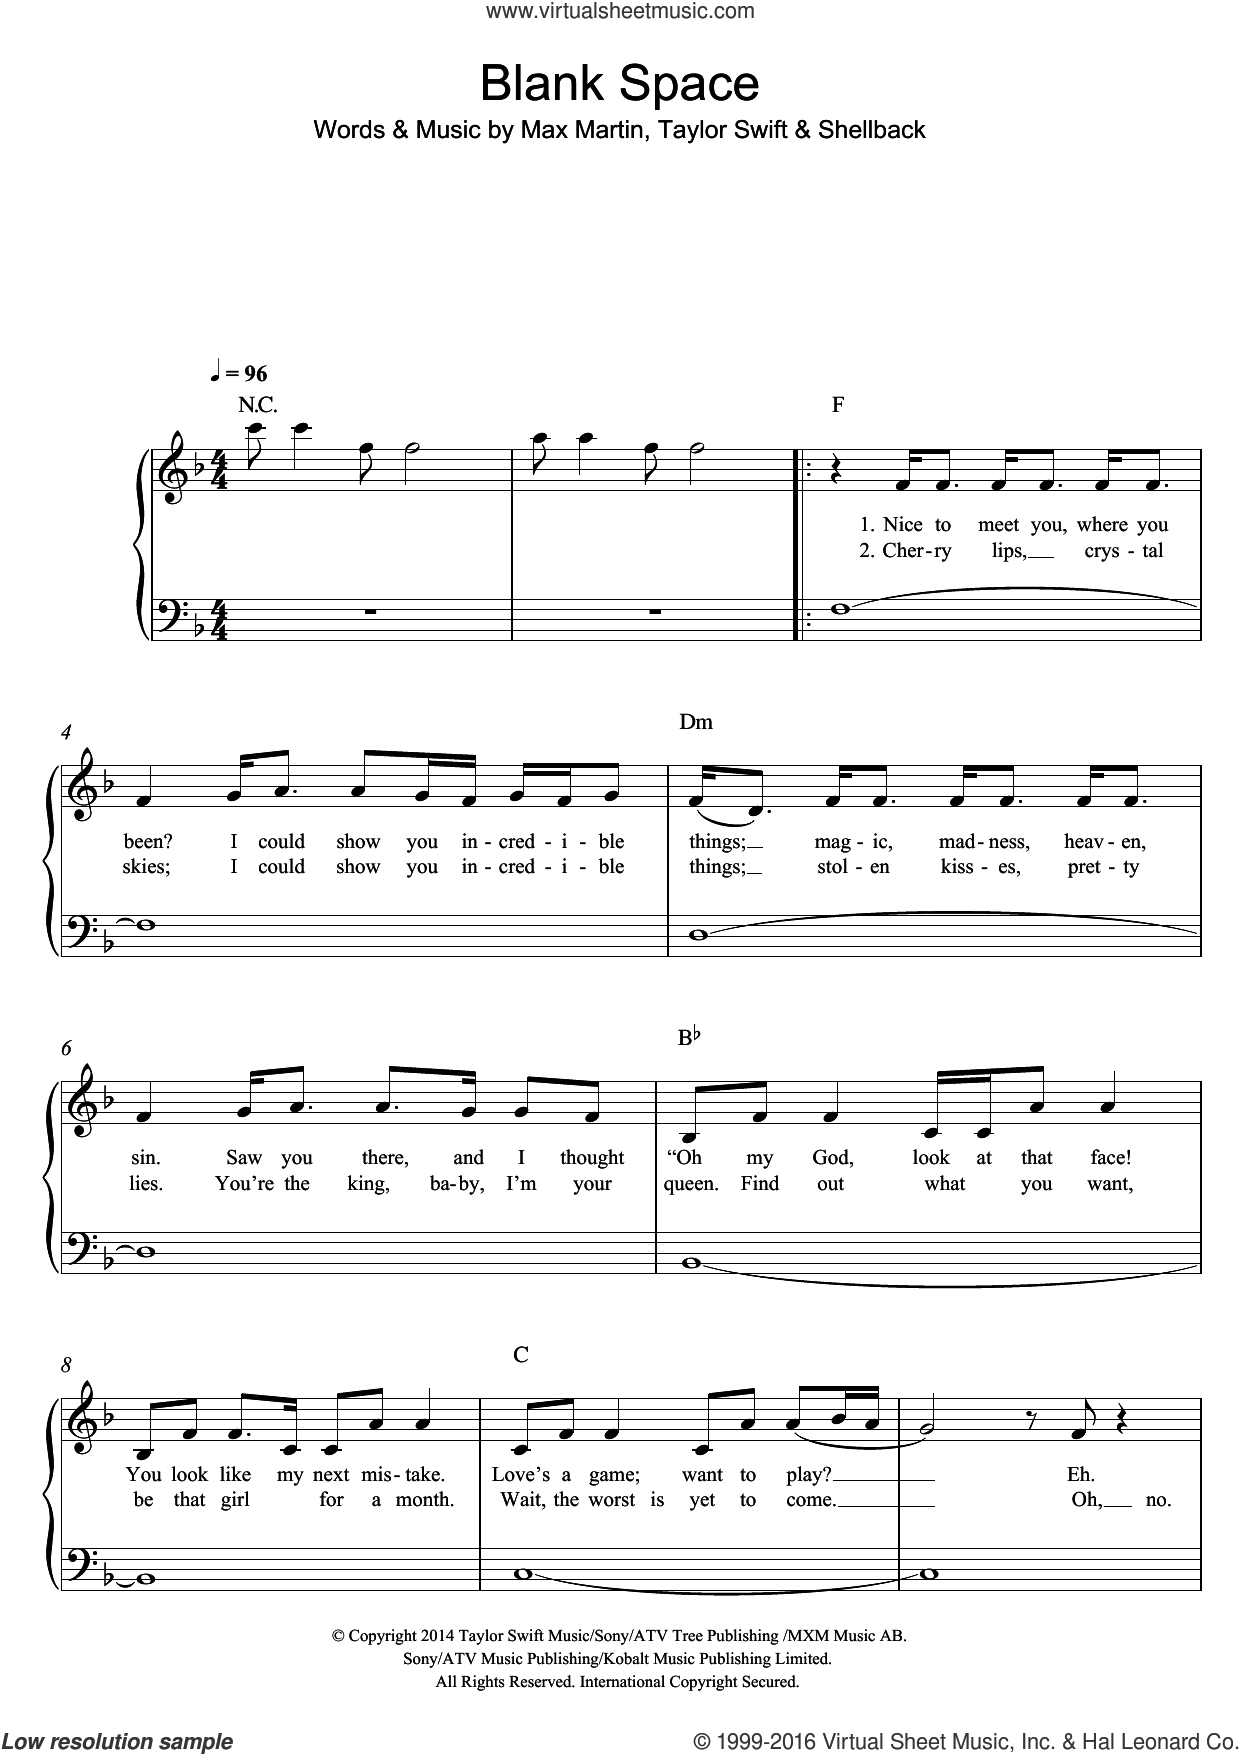 Blank Space sheet music for piano solo by Taylor Swift, Max Martin and Shellback, easy skill level